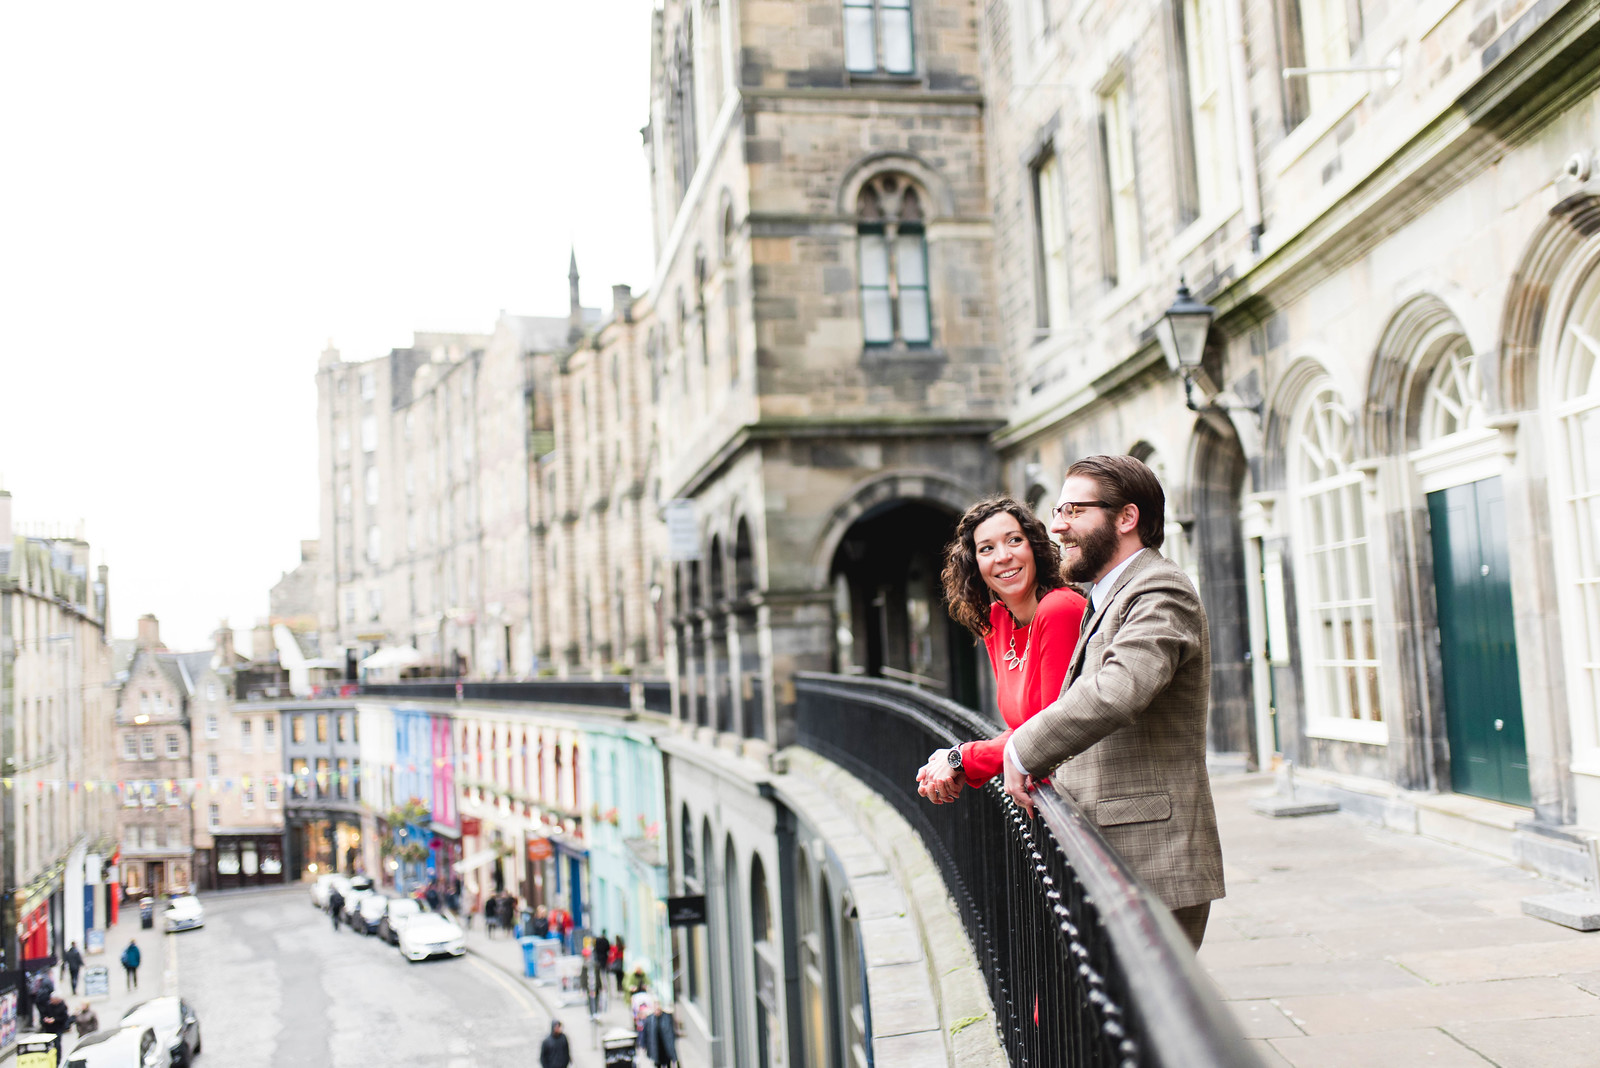 Flytographer Jilli in Edinburgh